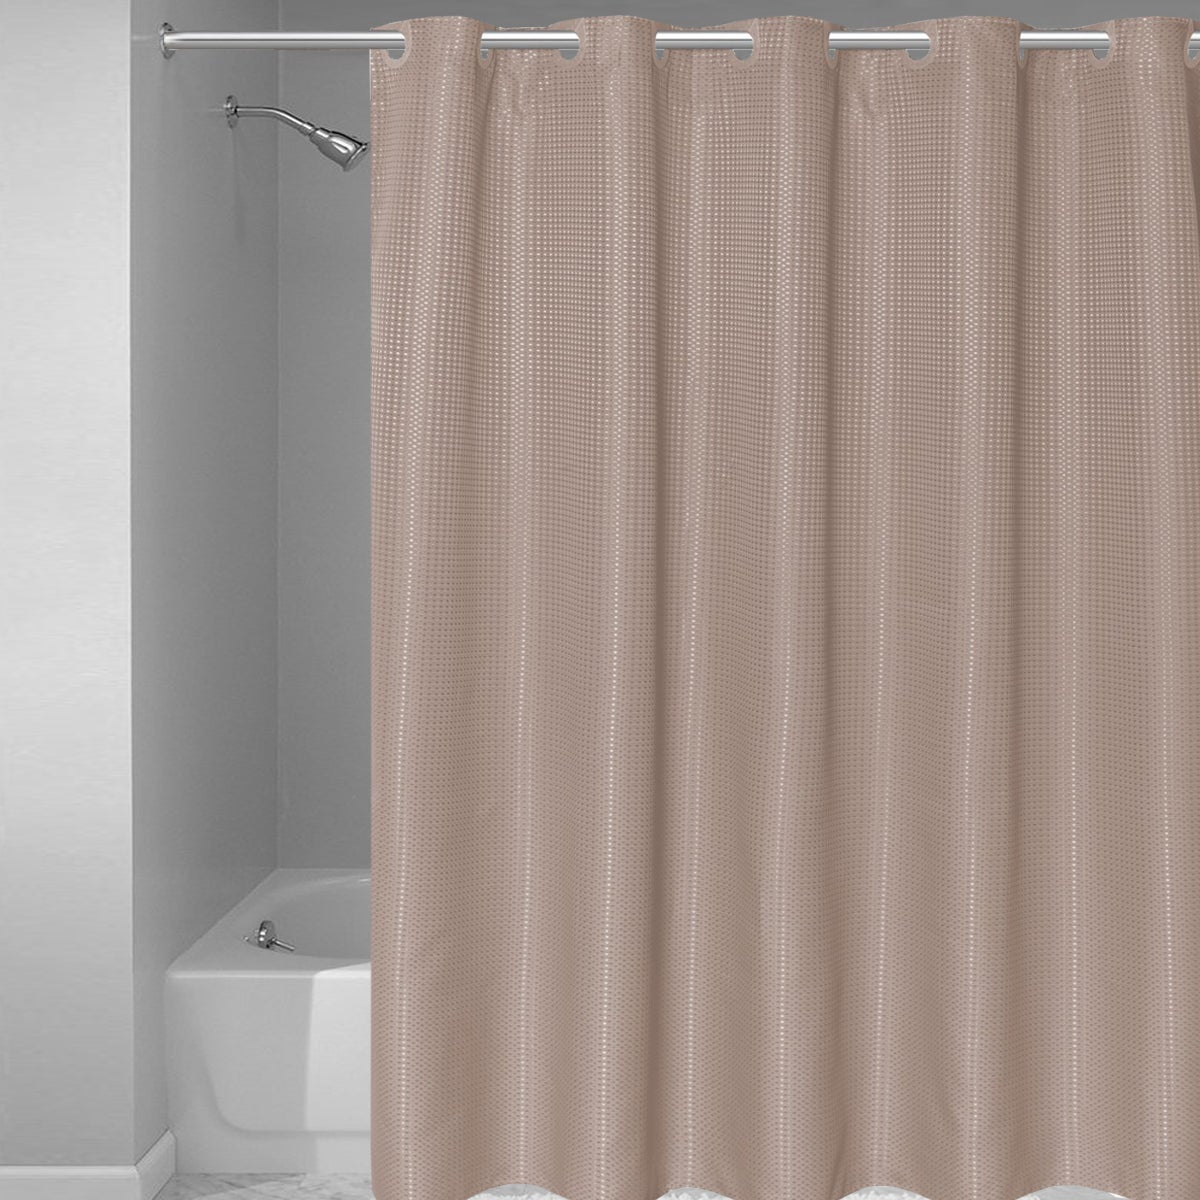 Shop EZ ON Waffle Weave Fabric Shower Curtain With Snap Off Liner Assorted Colors 70x75